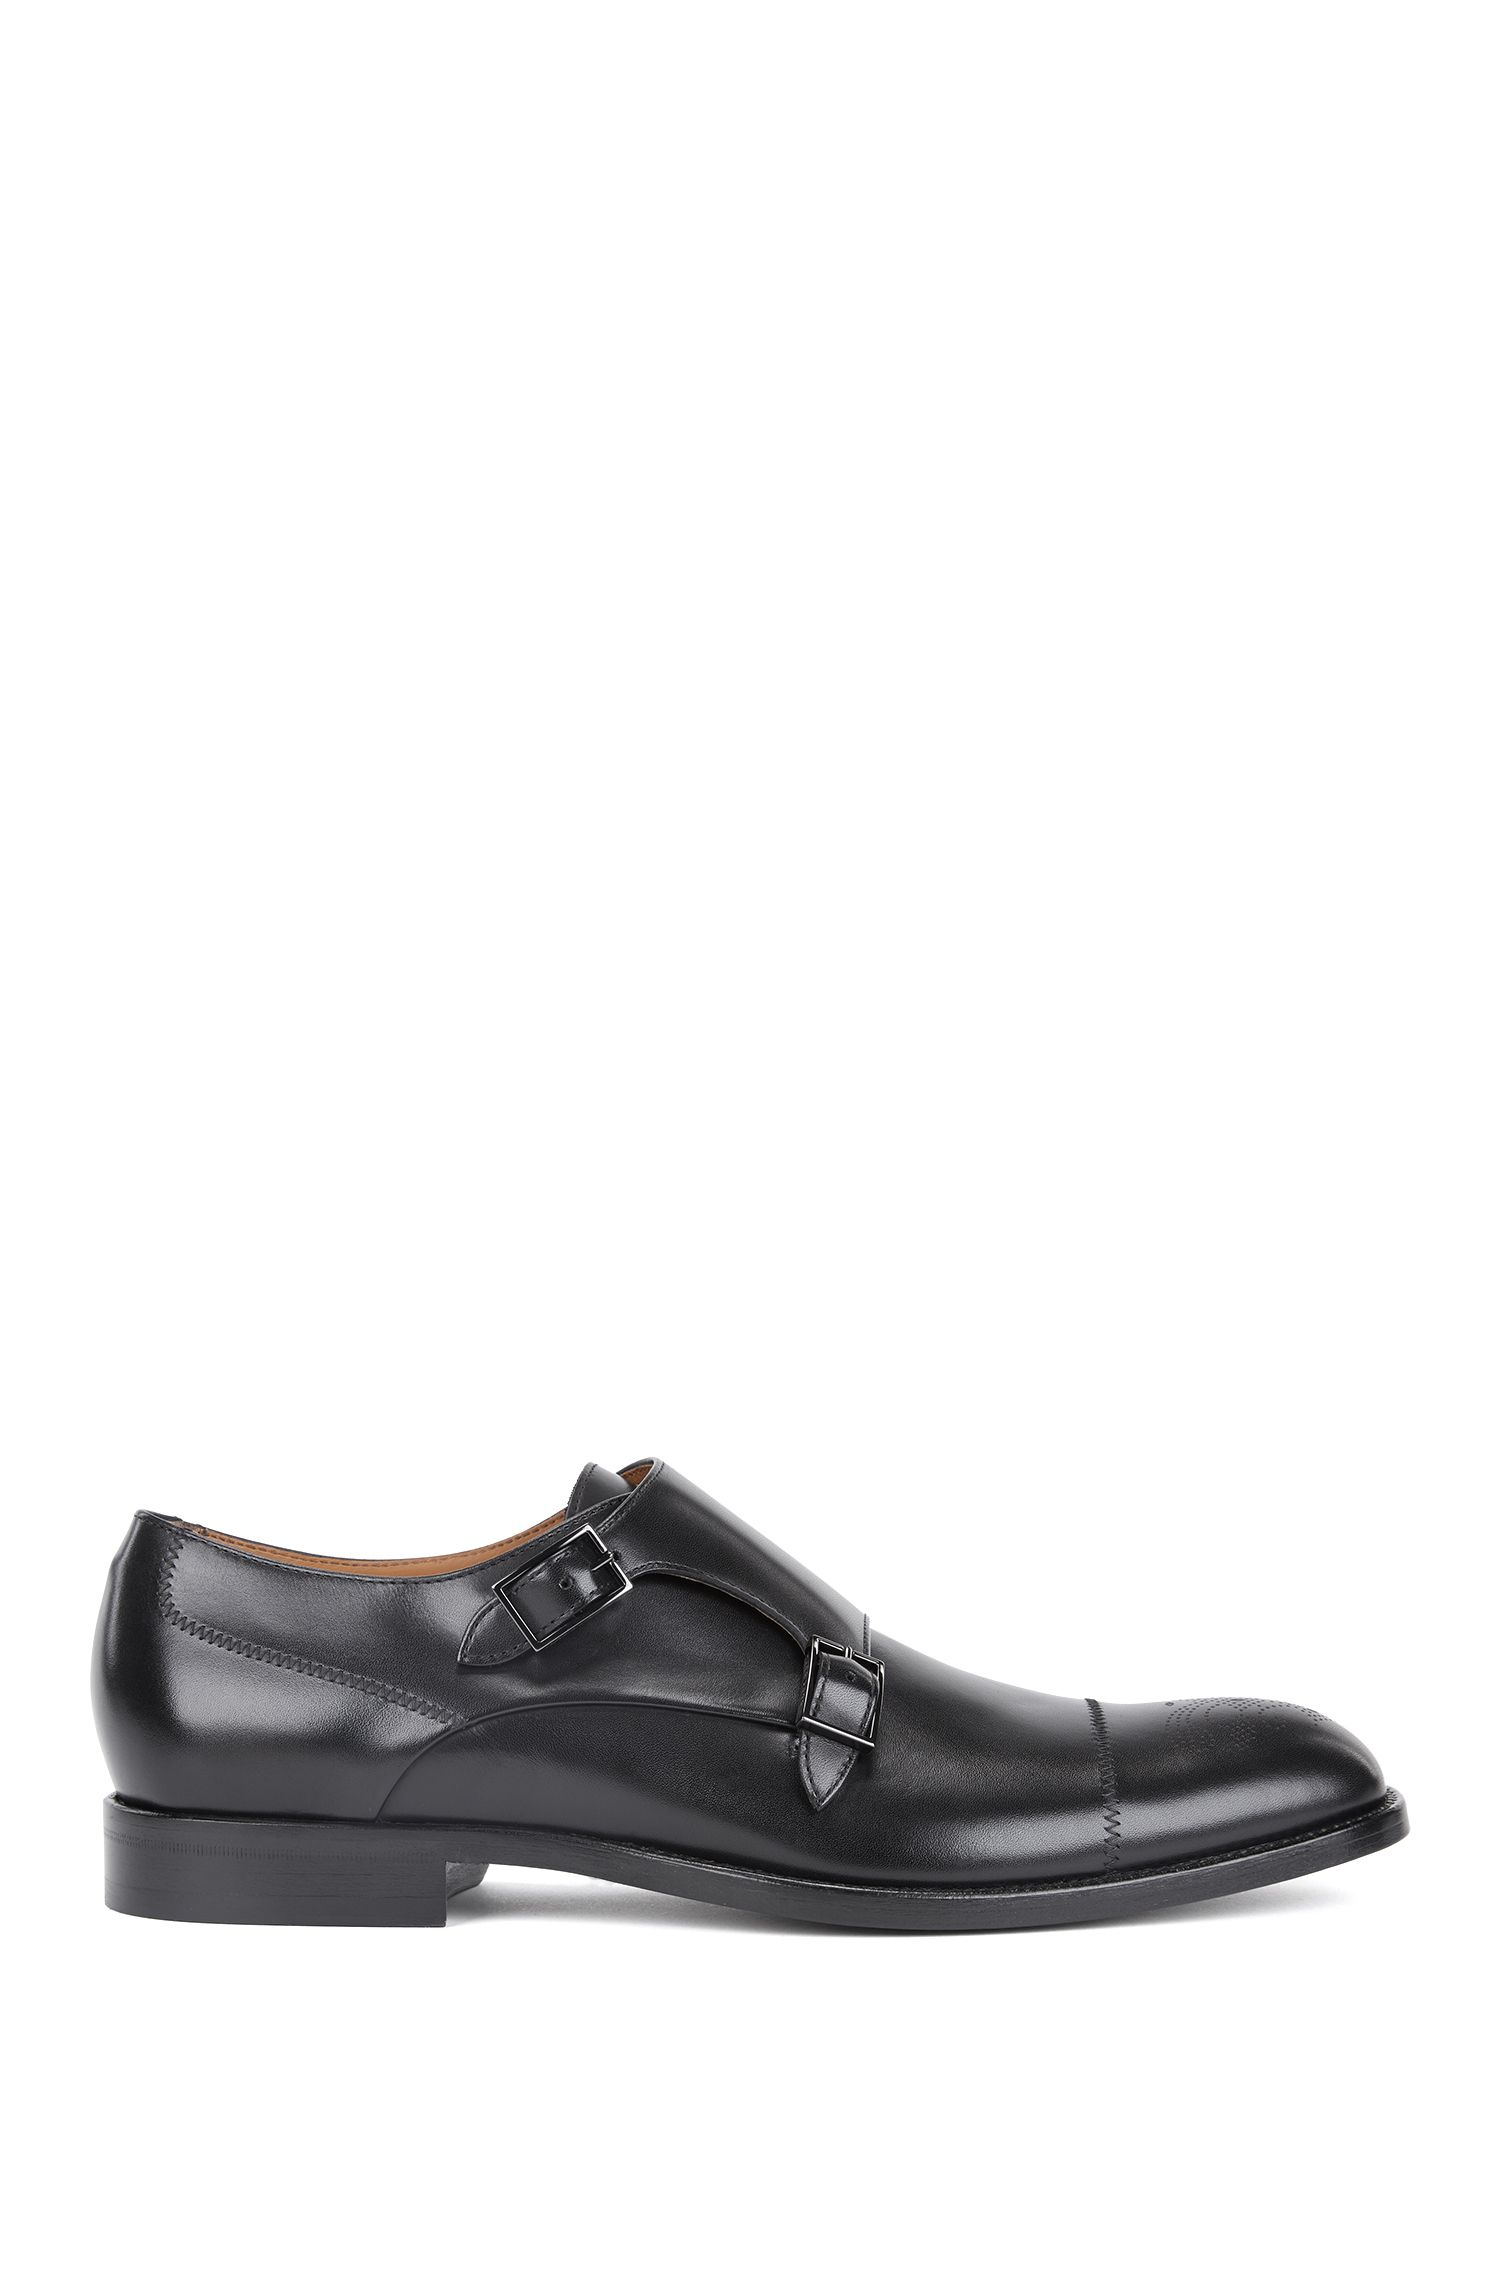 Polished calf-leather shoes with double monk strap